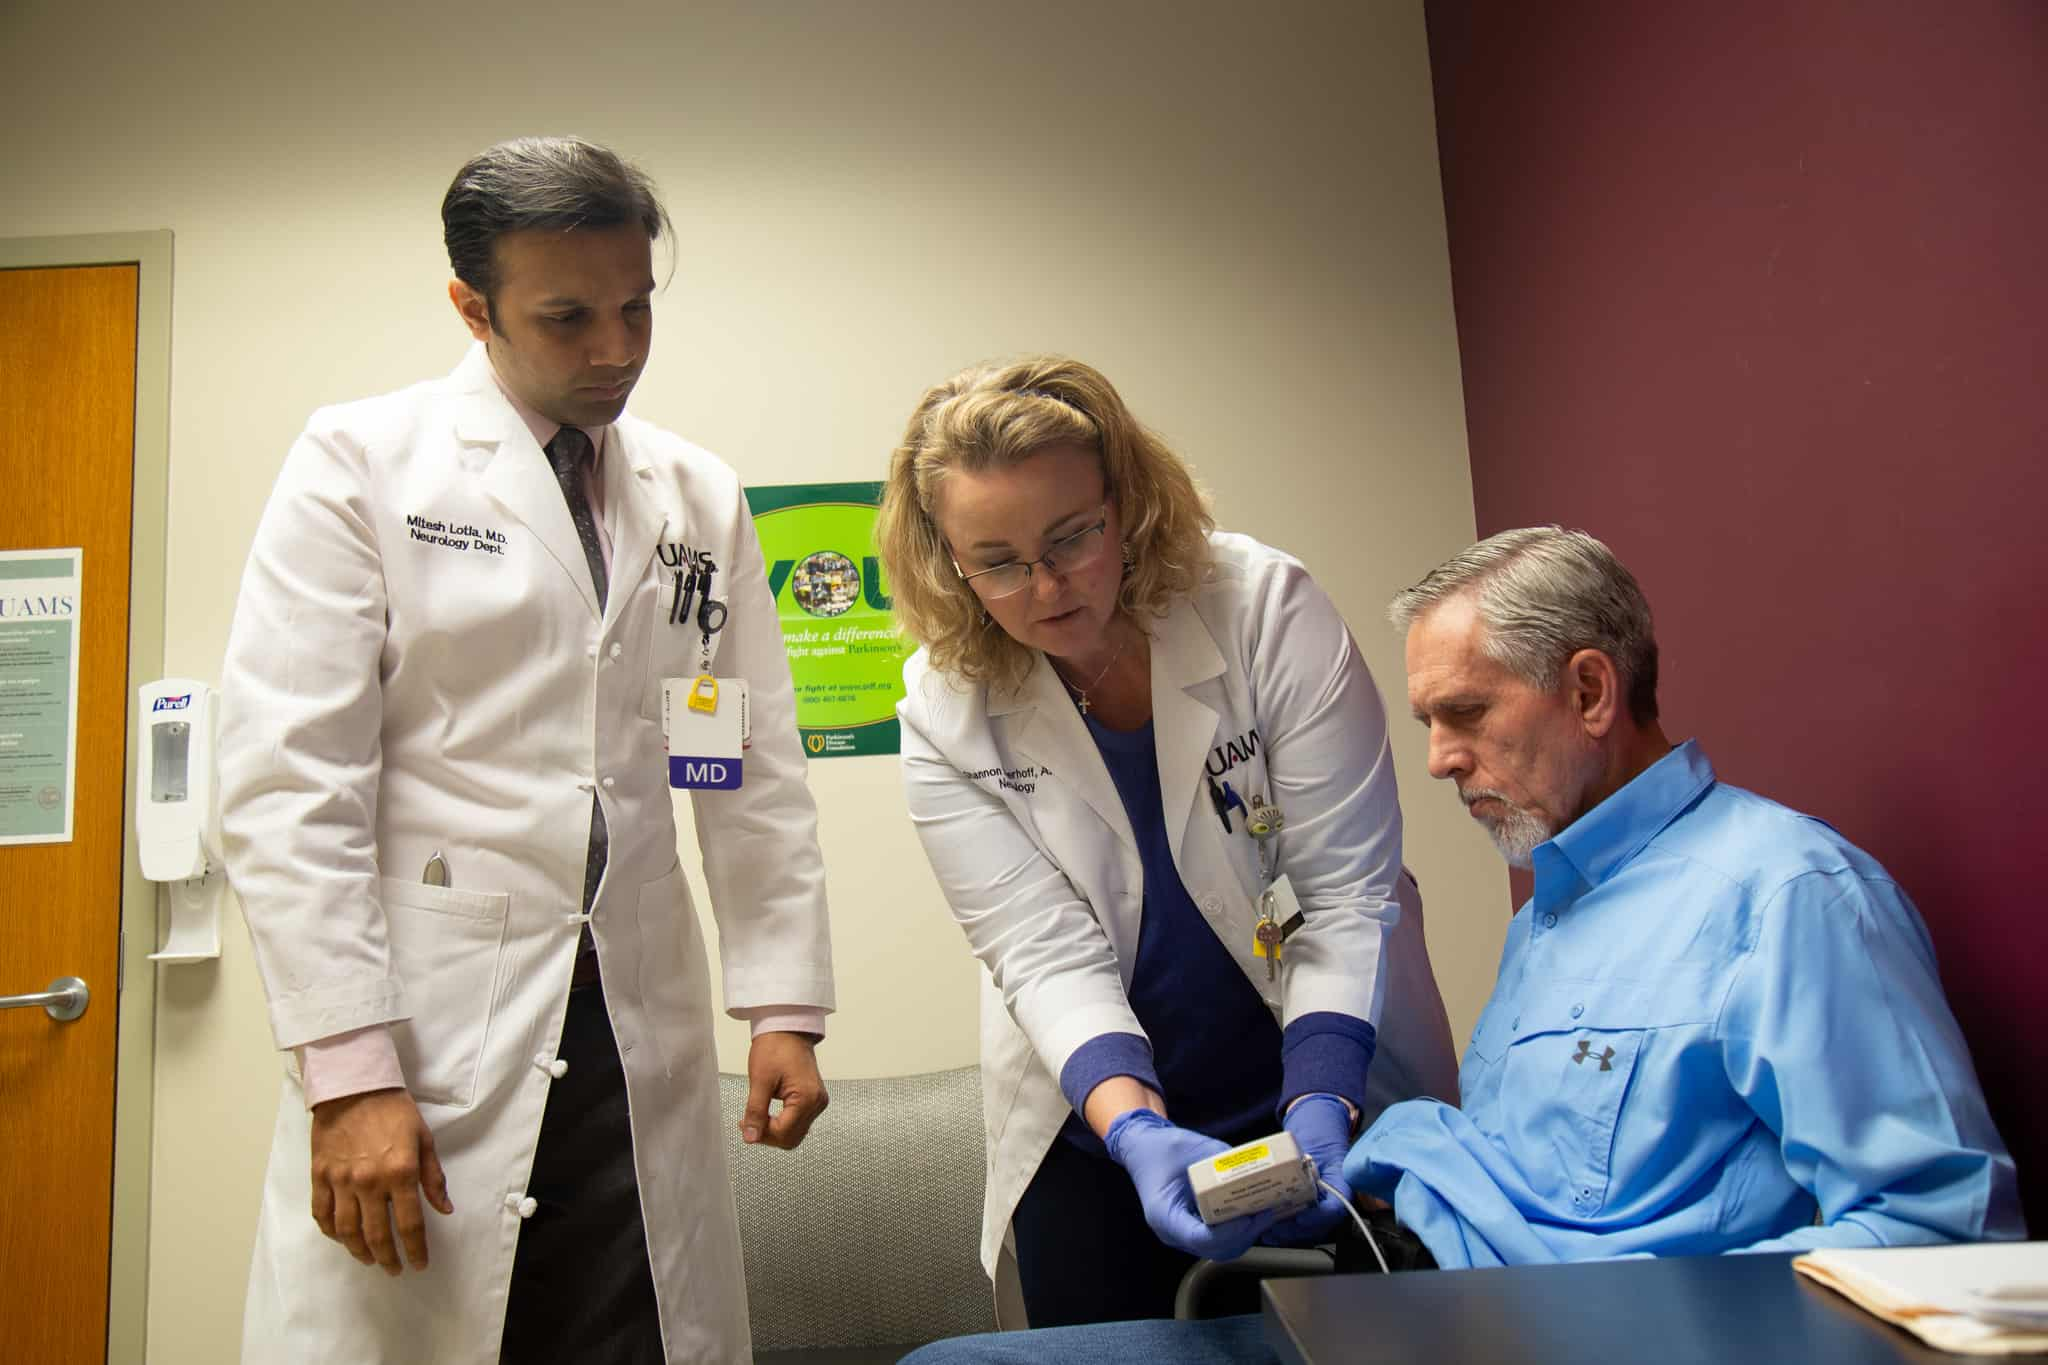 Metish Lotia, M.D. and Shannon Doerhoff, A.P.R.N. go over settings with Mark Avra on his Duopa pump.